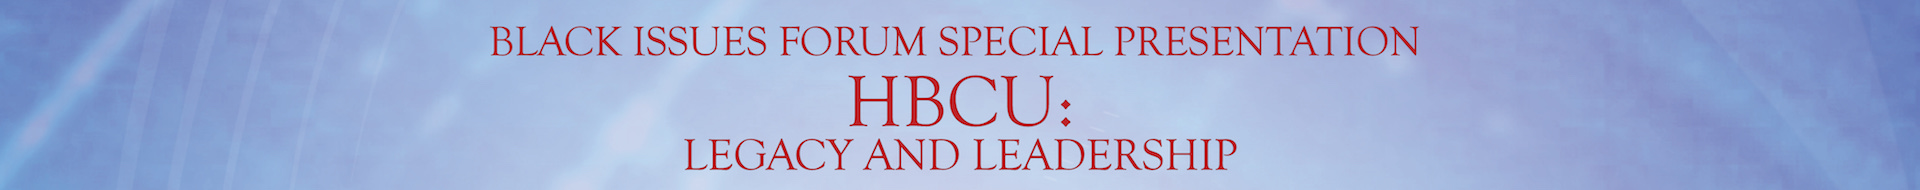 Black Issues Forum Special Presentation - HBCUs: Legacy and Leadership